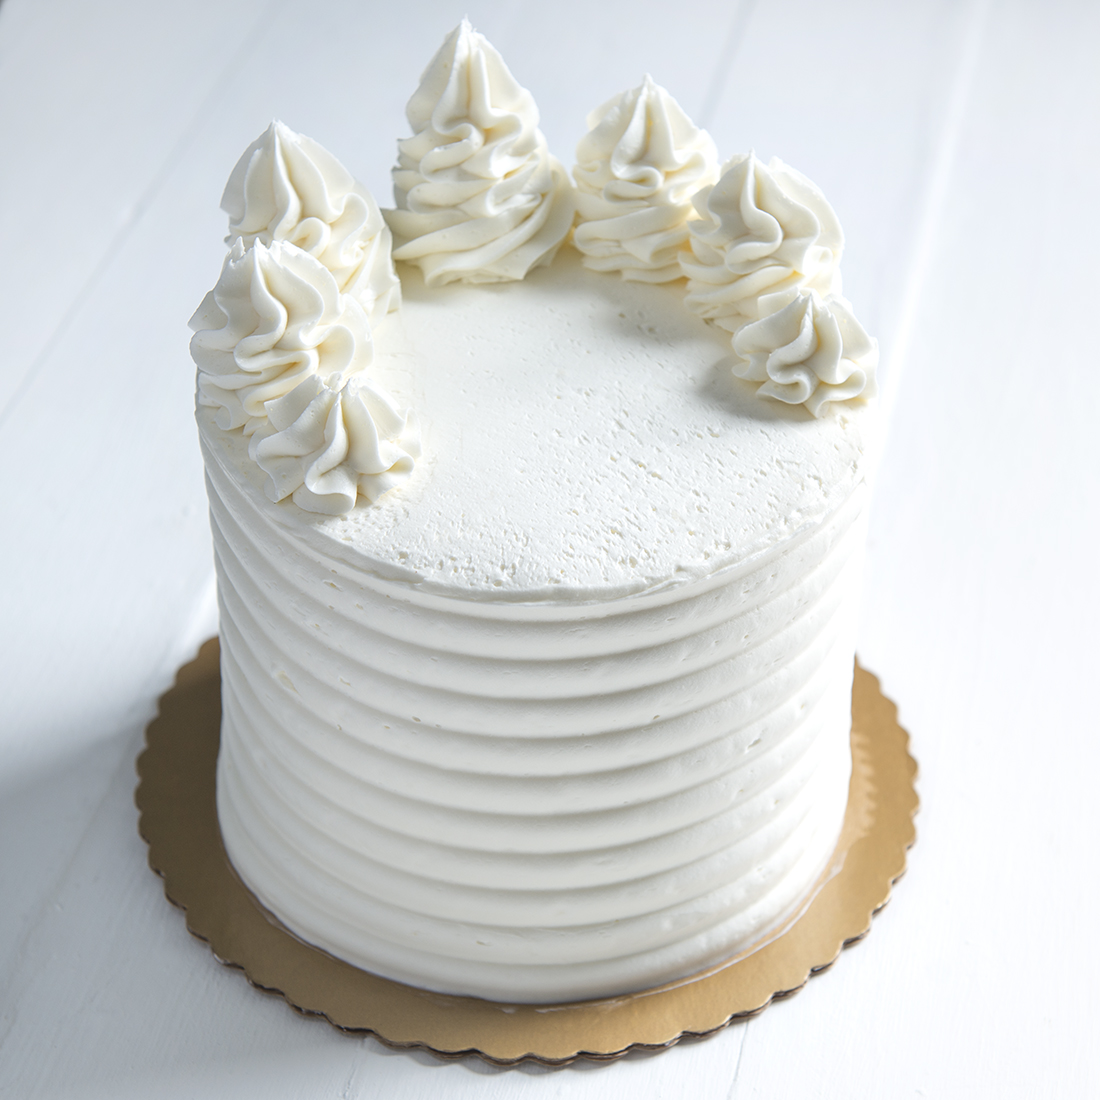 "Gluten Free Friendly Black & White - Chocolate cake filled and frosted with vanilla buttercream6"" $40 9"" 55 10"" 70 12"" 90"